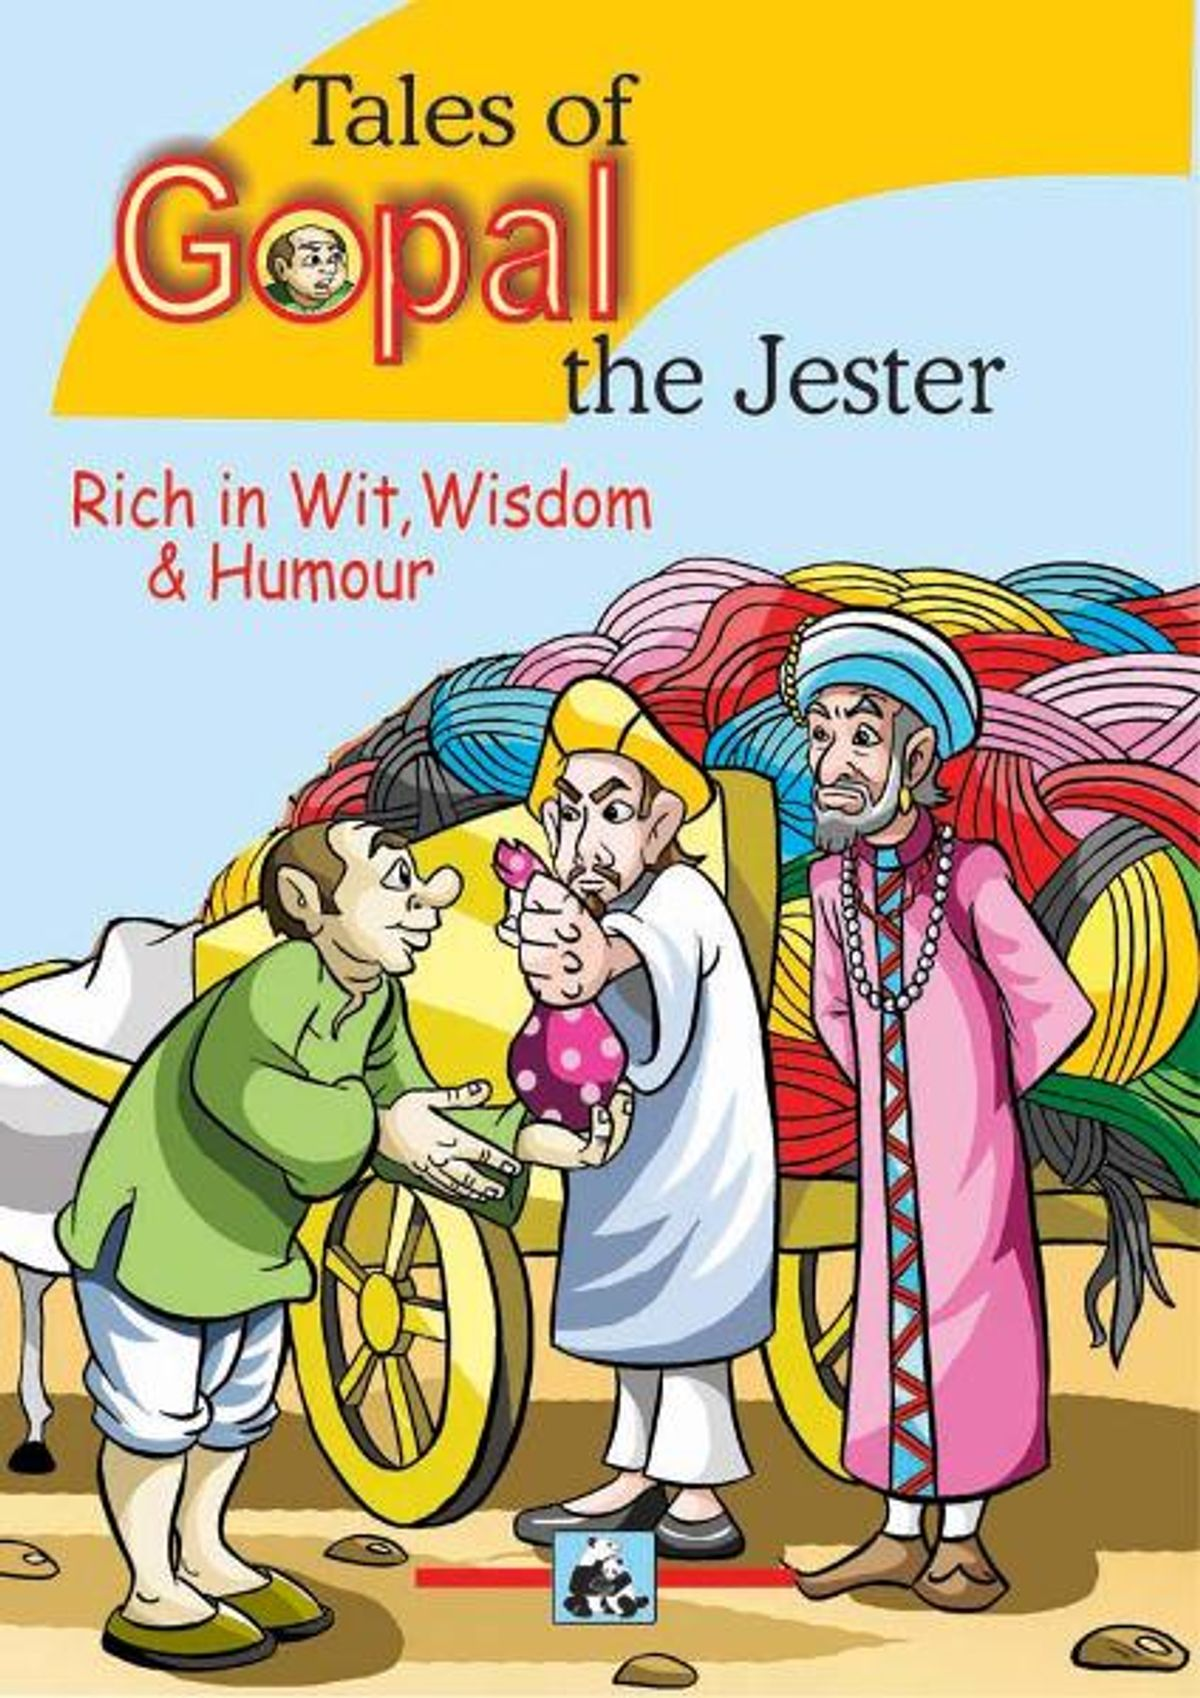 001 Essay Example Tales Of Gopal The Jester Rich In Wit Wisdom Humour Unusual And Short On Full